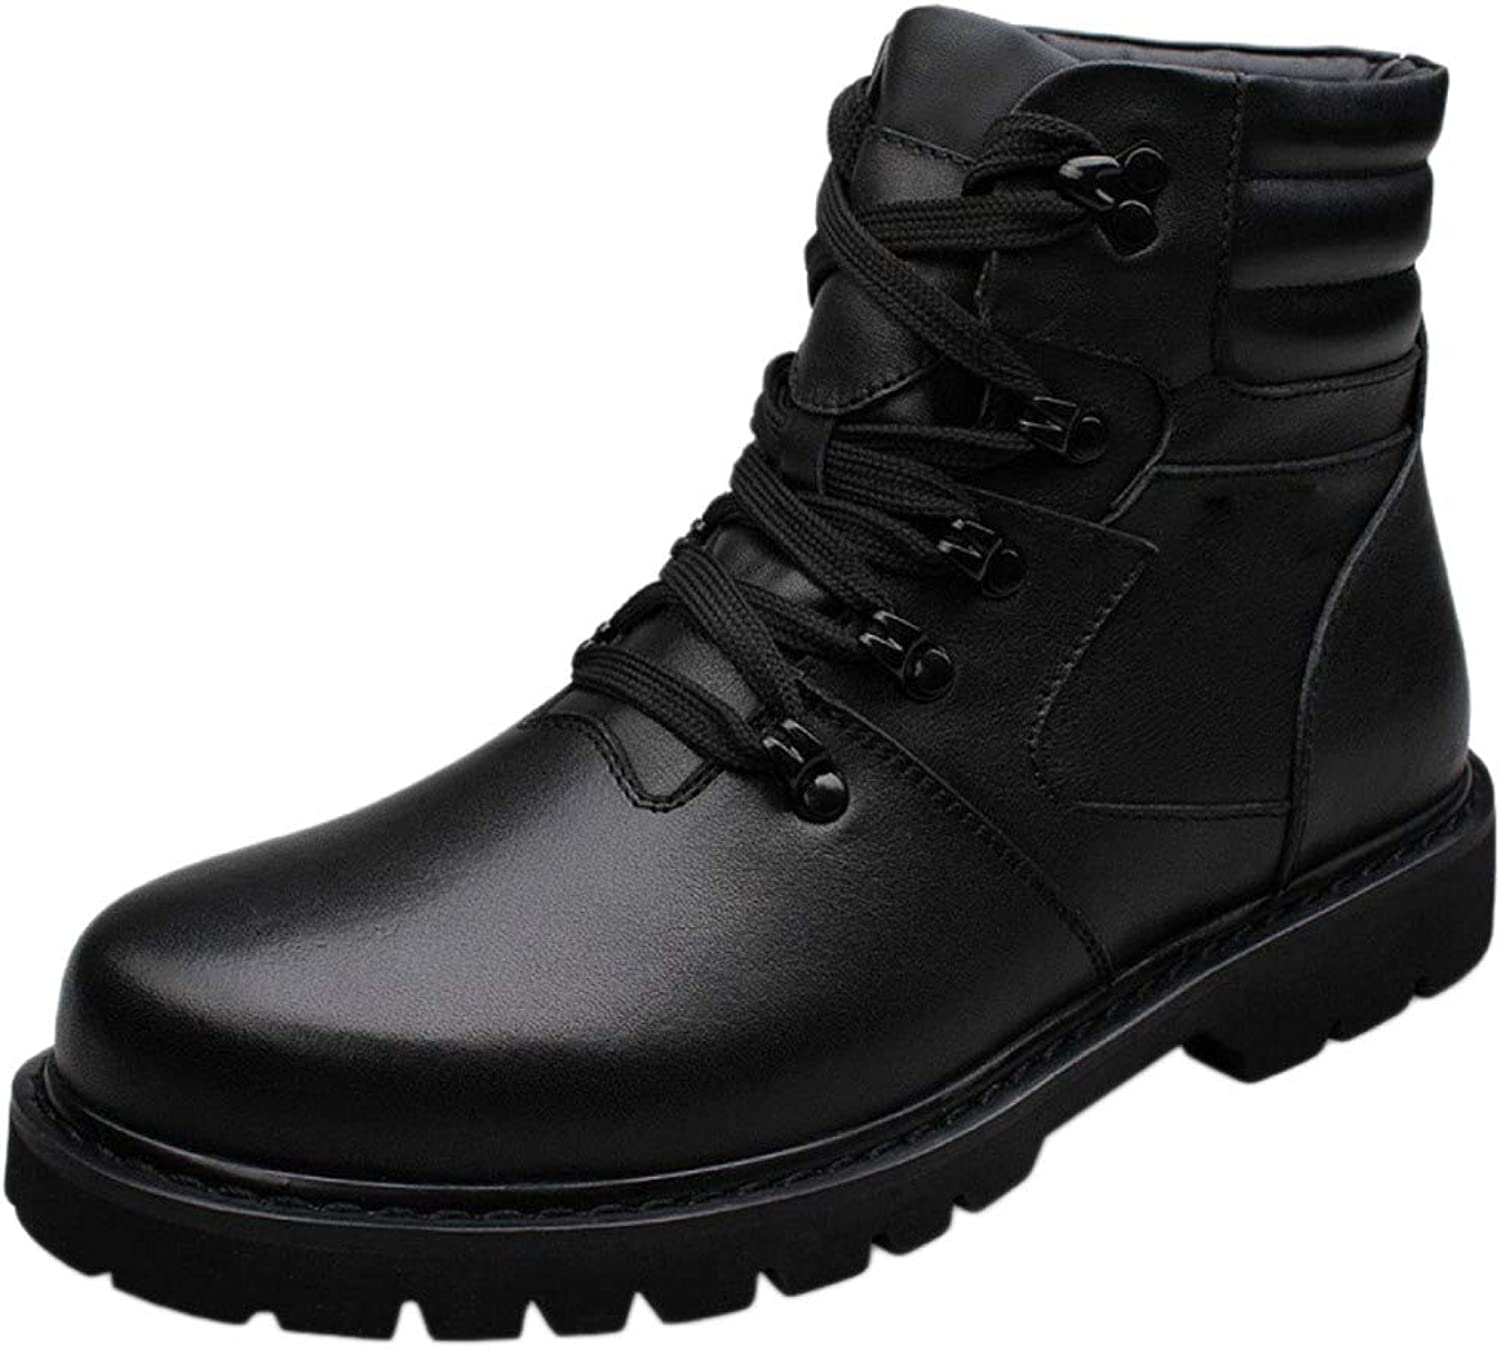 Martin Boots Mens Adult Boots Lamper Boots Classic Leather Winter Non-Slip Warm High Plus Military shoes